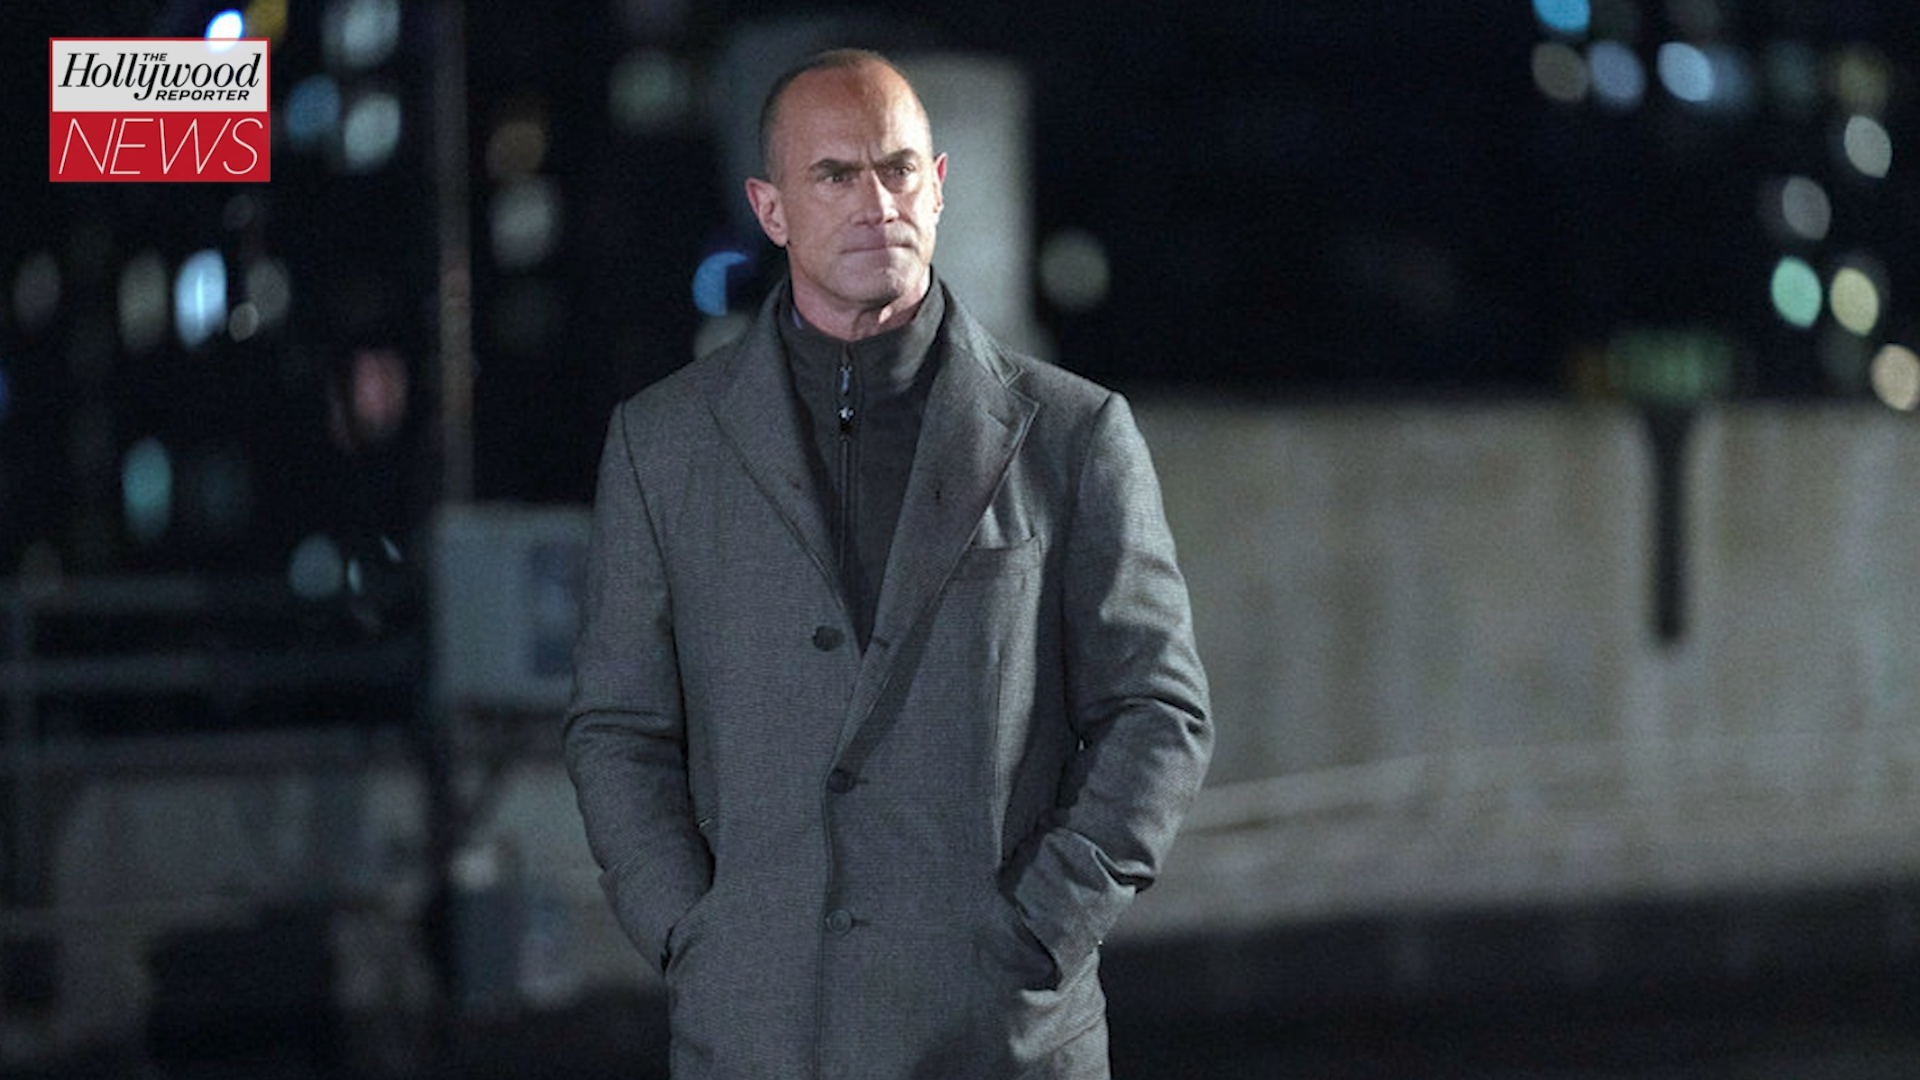 TV Ratings: 'Law & Order: SVU,' 'Organized Crime' Score With Chris Meloni's Return